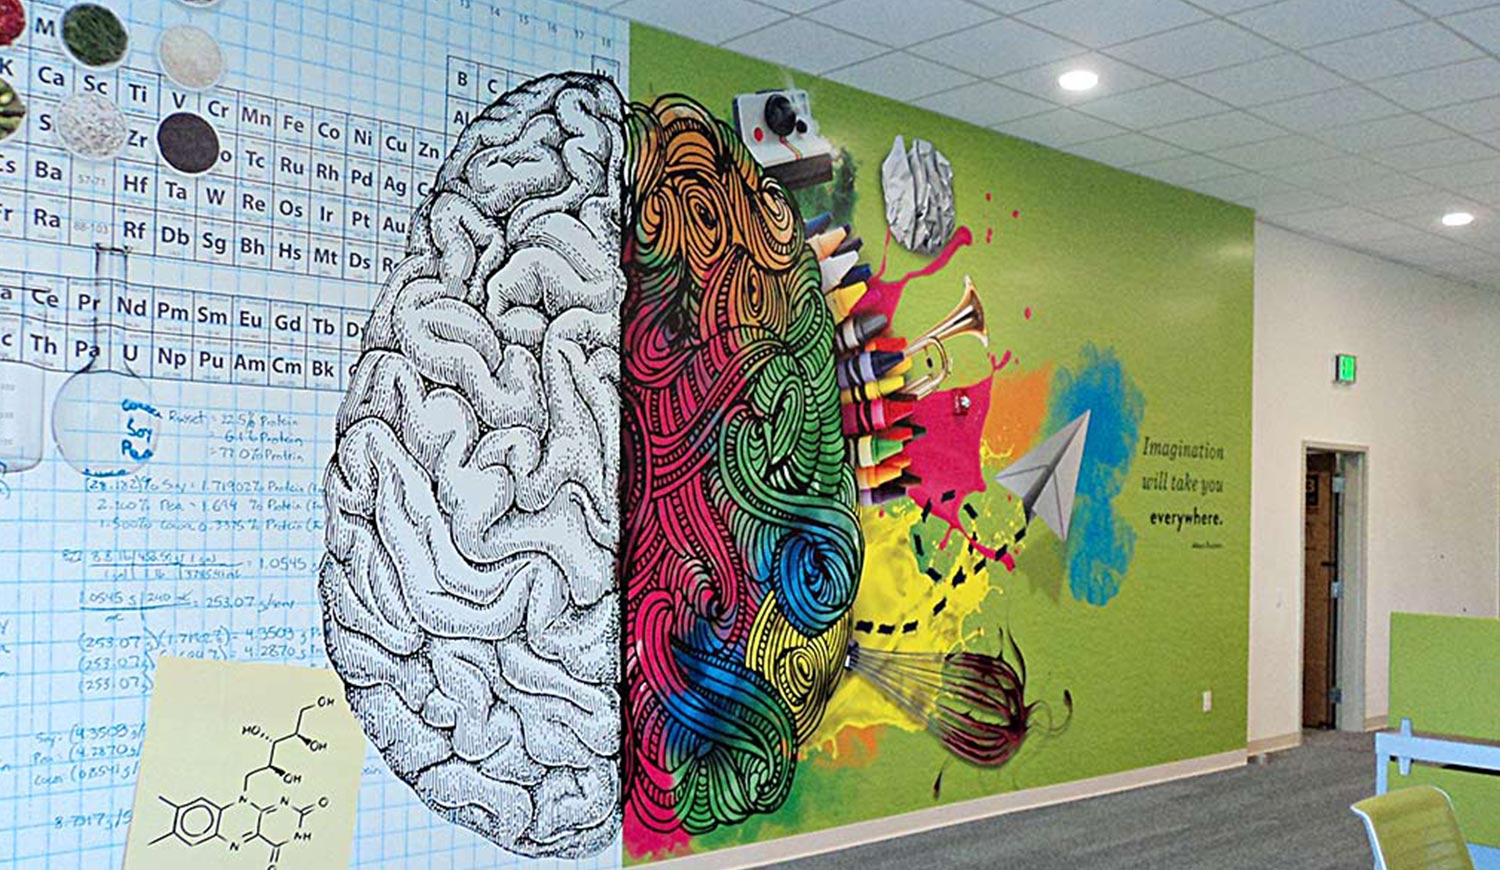 Educational Wall Prints for Schools - Wall Mural in College